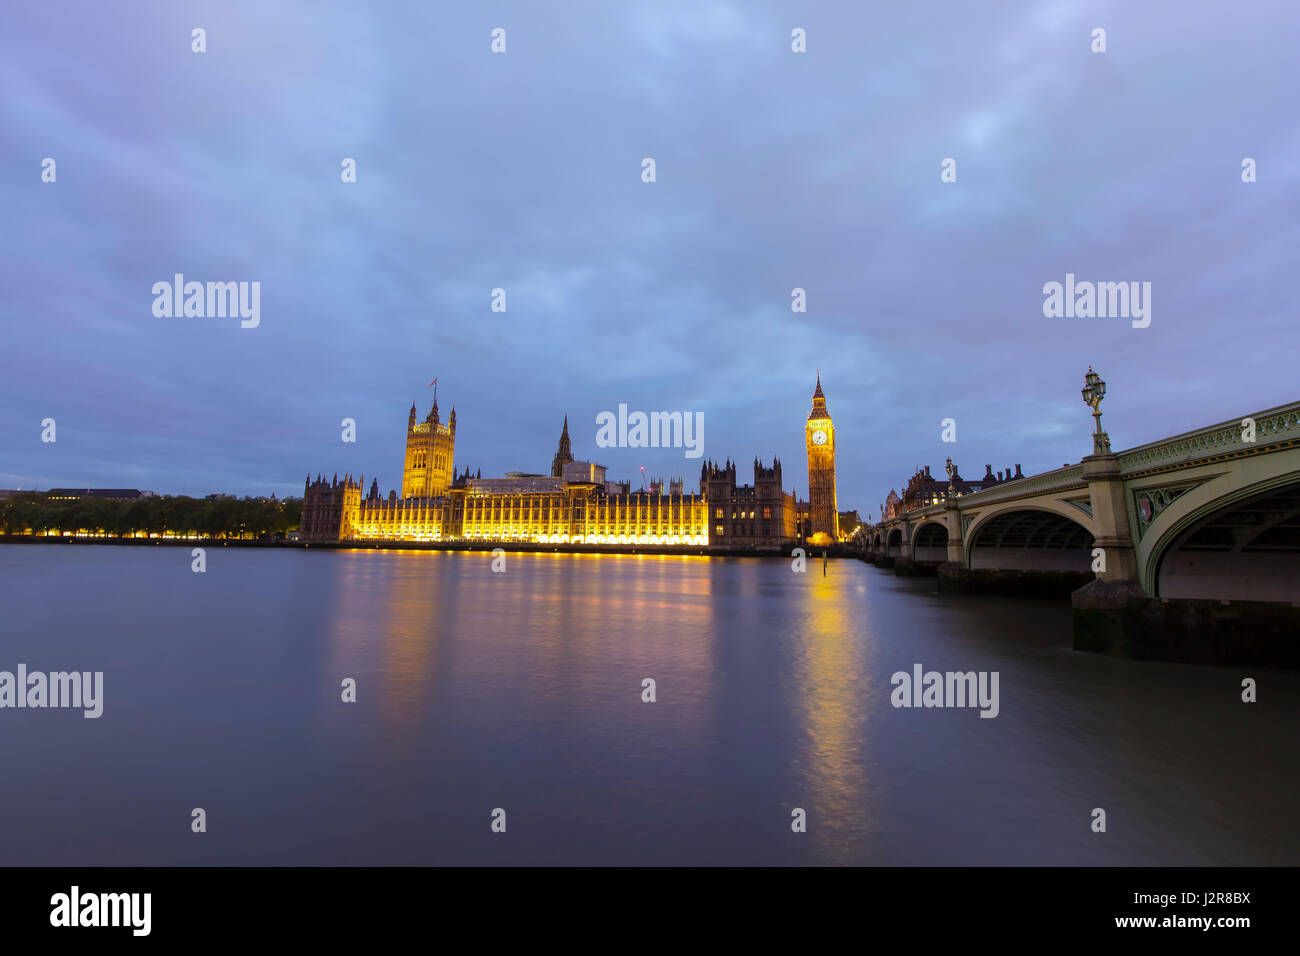 View of the tower of Big Ben and parliament buildings across the Thames river in Westminster, London. Photo taken - Stock Image